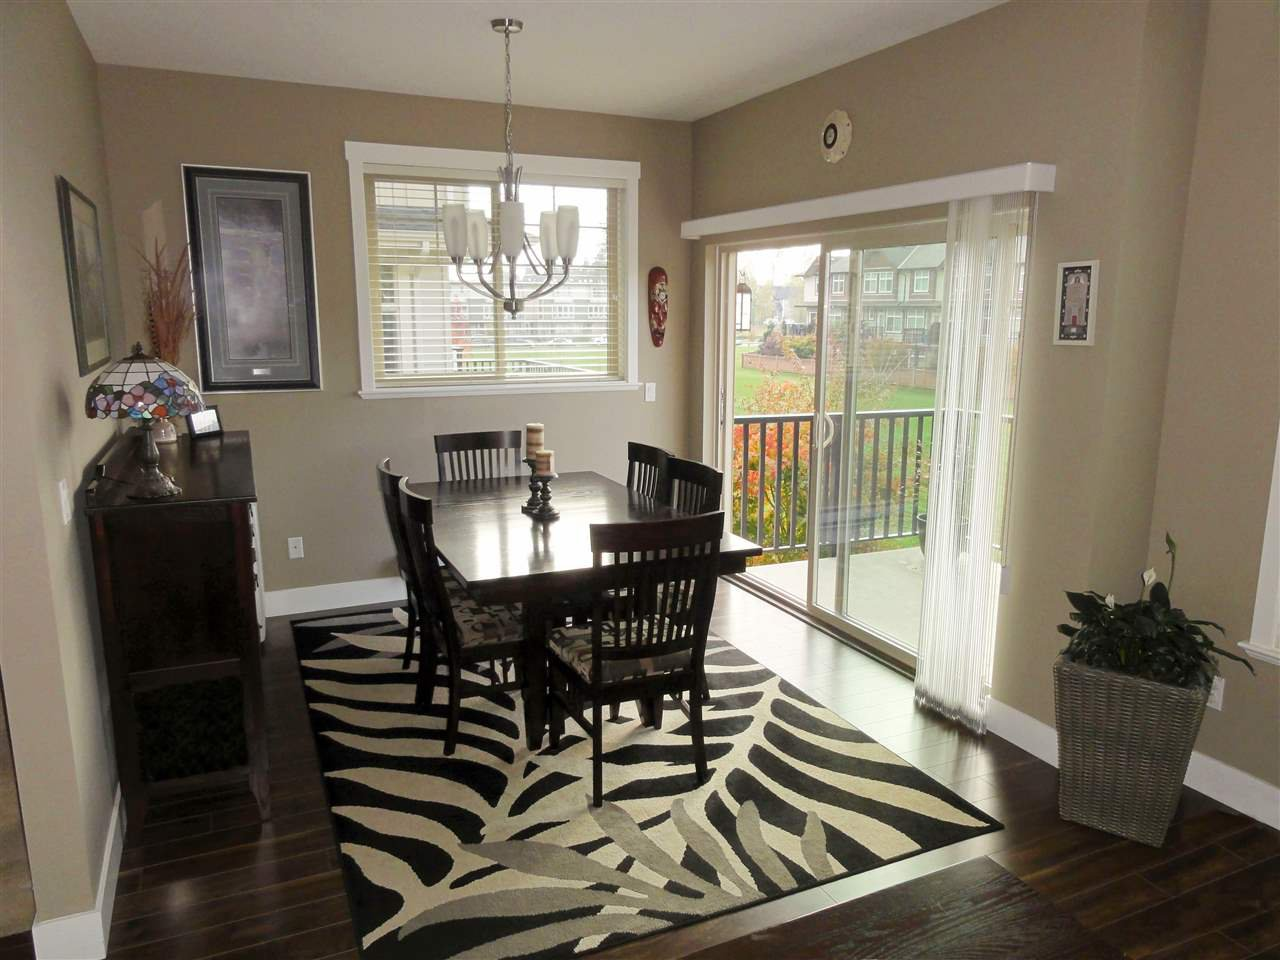 """Photo 4: Photos: 47 19525 73 Avenue in Surrey: Clayton Townhouse for sale in """"Uptown"""" (Cloverdale)  : MLS®# R2014205"""